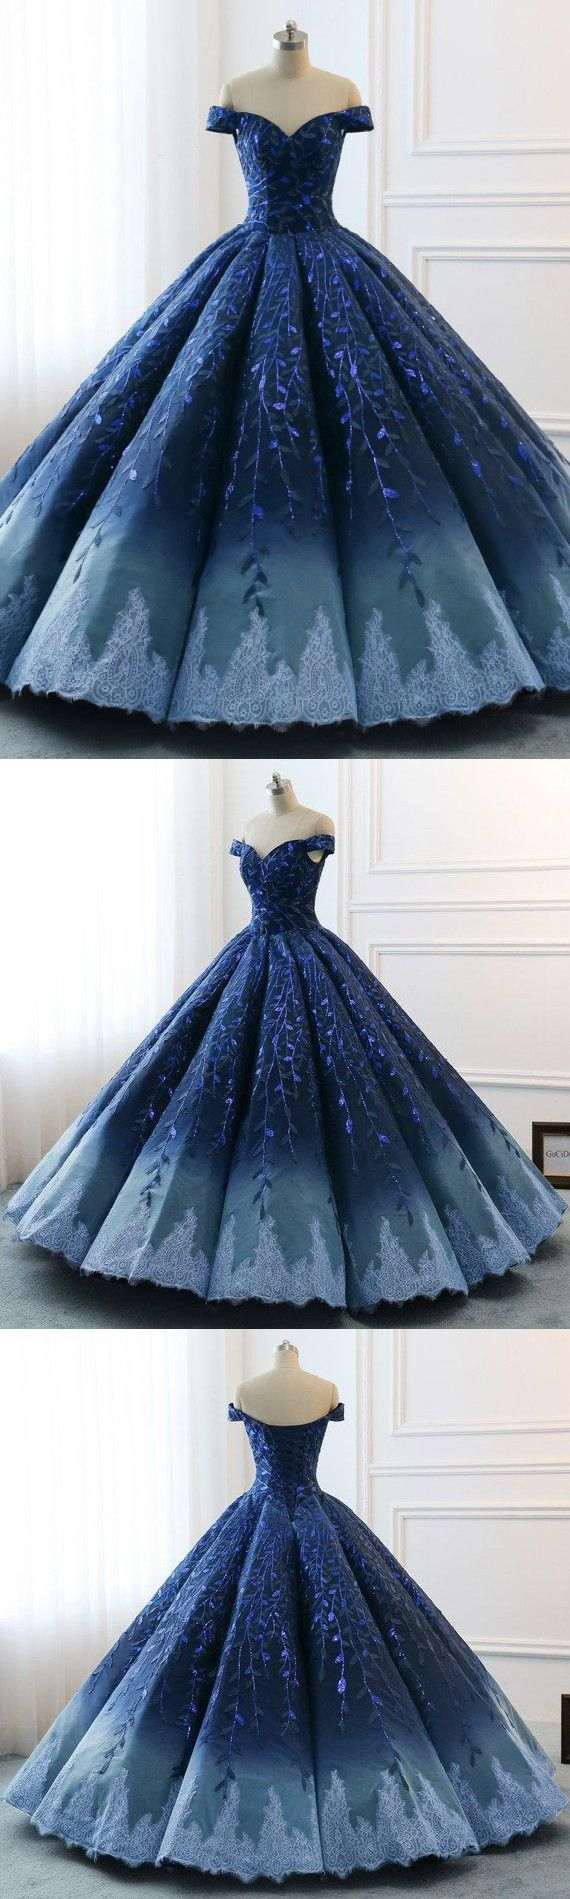 Ball gown vintage prom dress off the shoulder unique beautiful prom